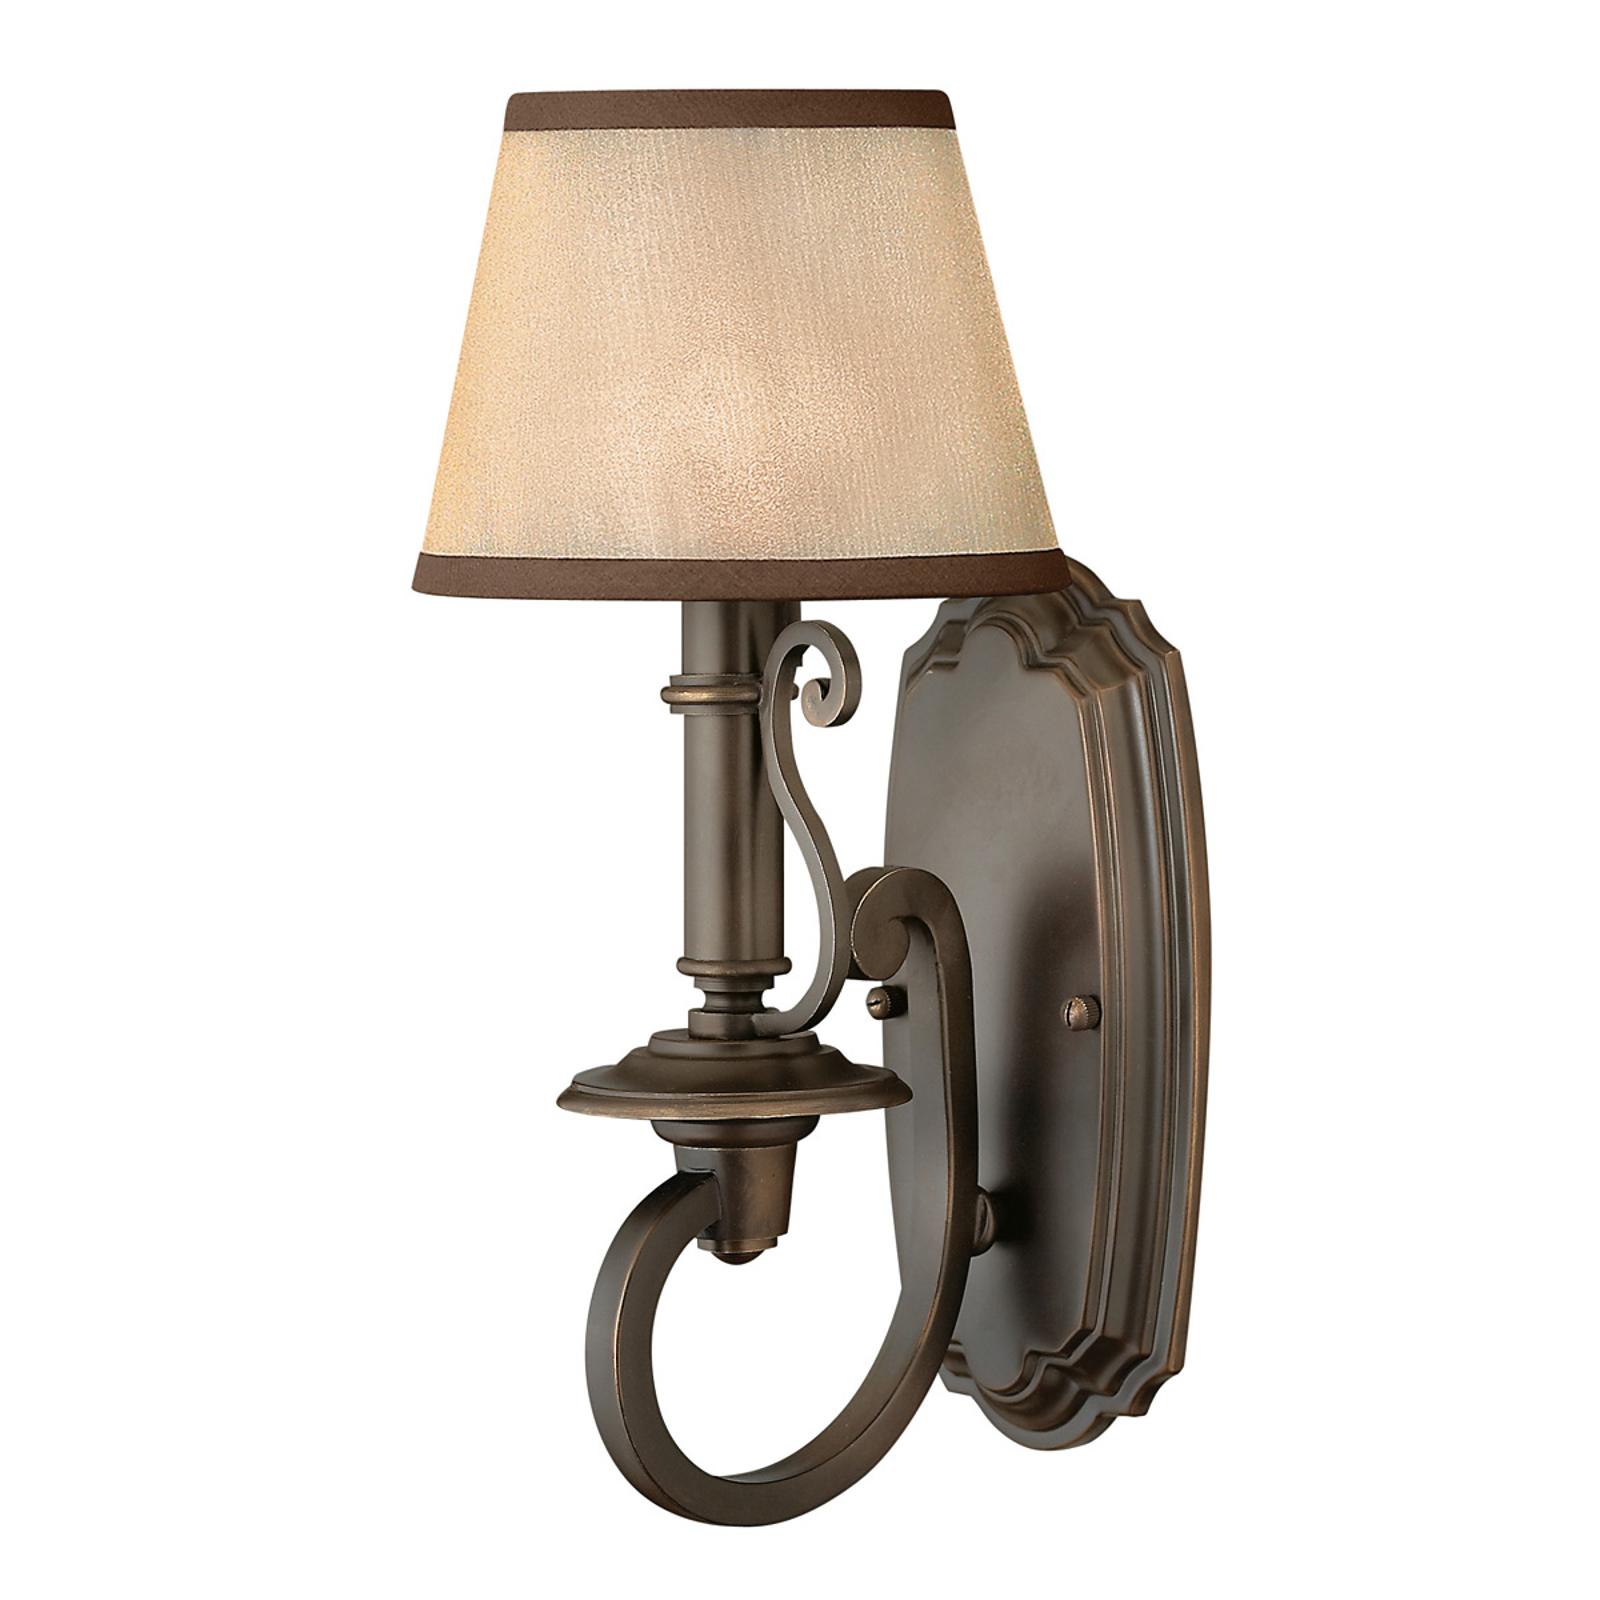 Plymouth Wall Light with Organza Fabric Shade_3048114_1